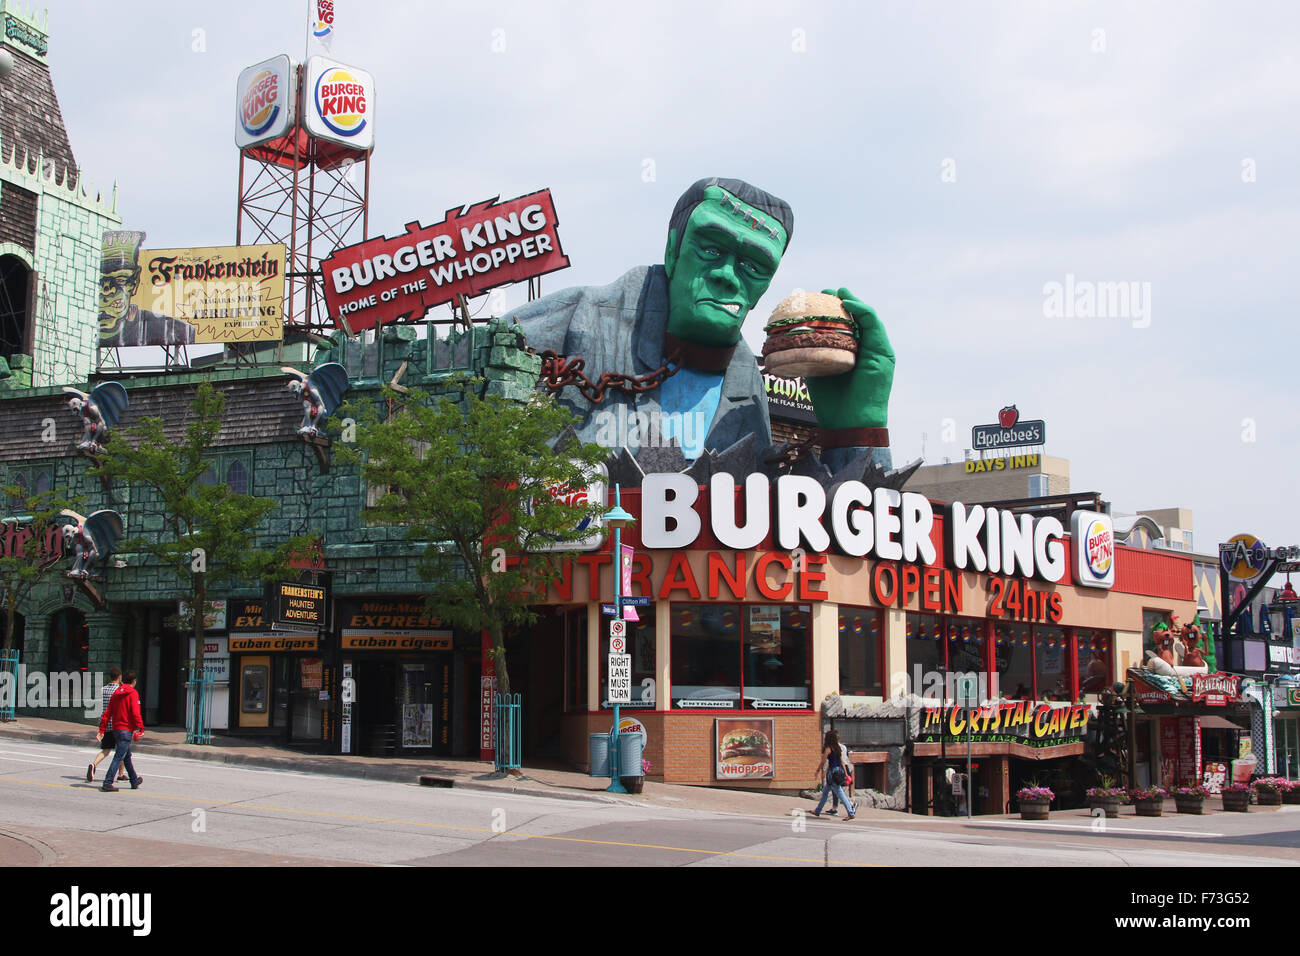 burger king restaurant with frankenstein holding a whopper hamburger stock photo 90432974 alamy. Black Bedroom Furniture Sets. Home Design Ideas